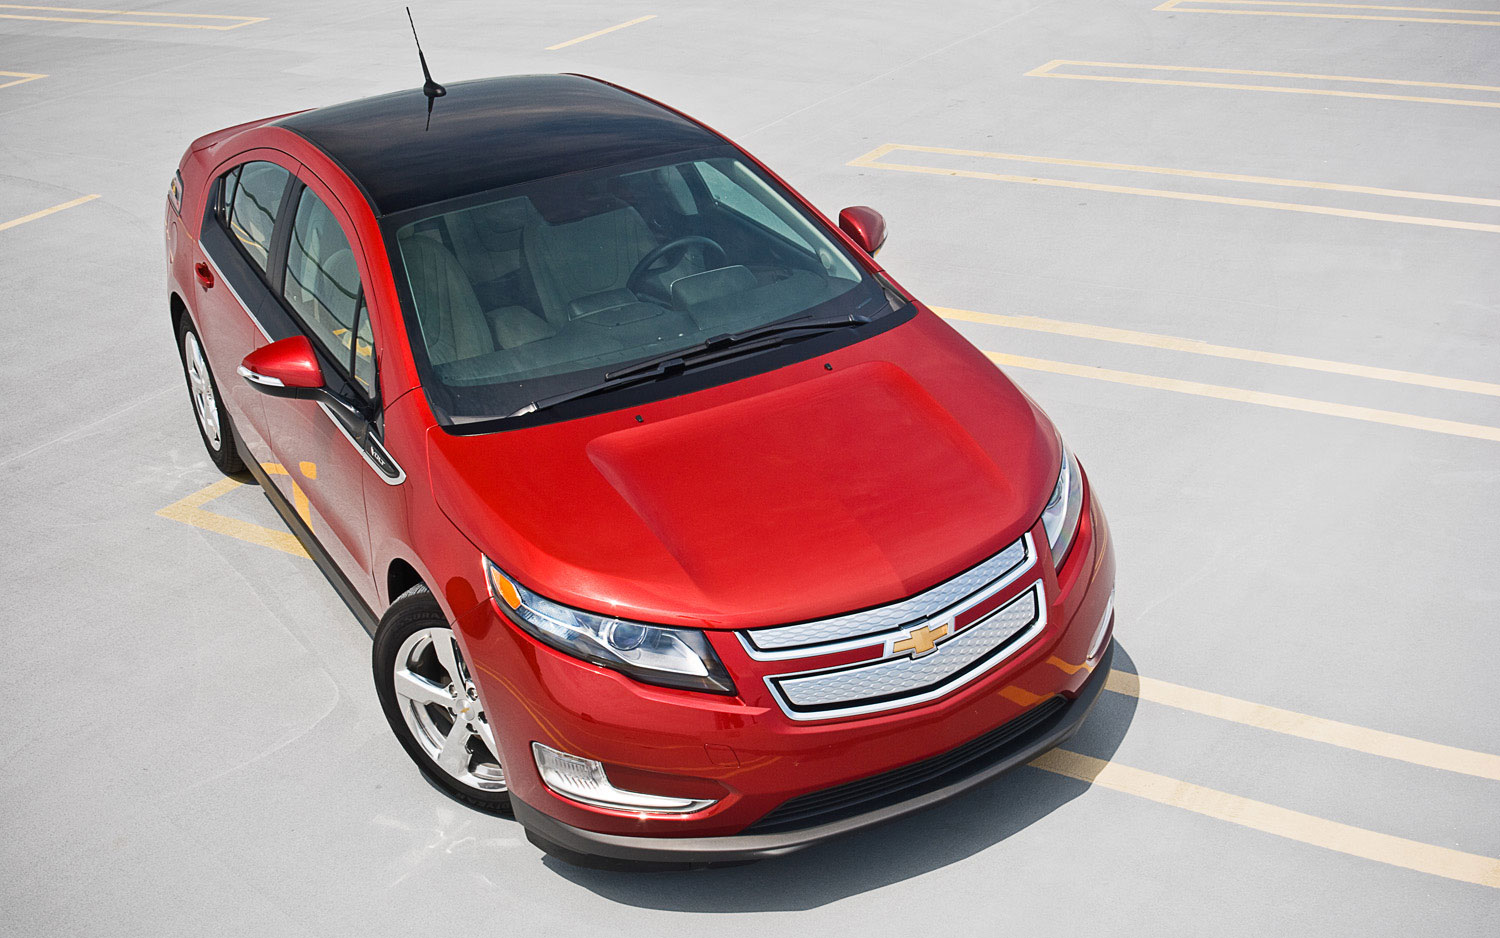 2011 Chevrolet Volt Front Right View Parked1